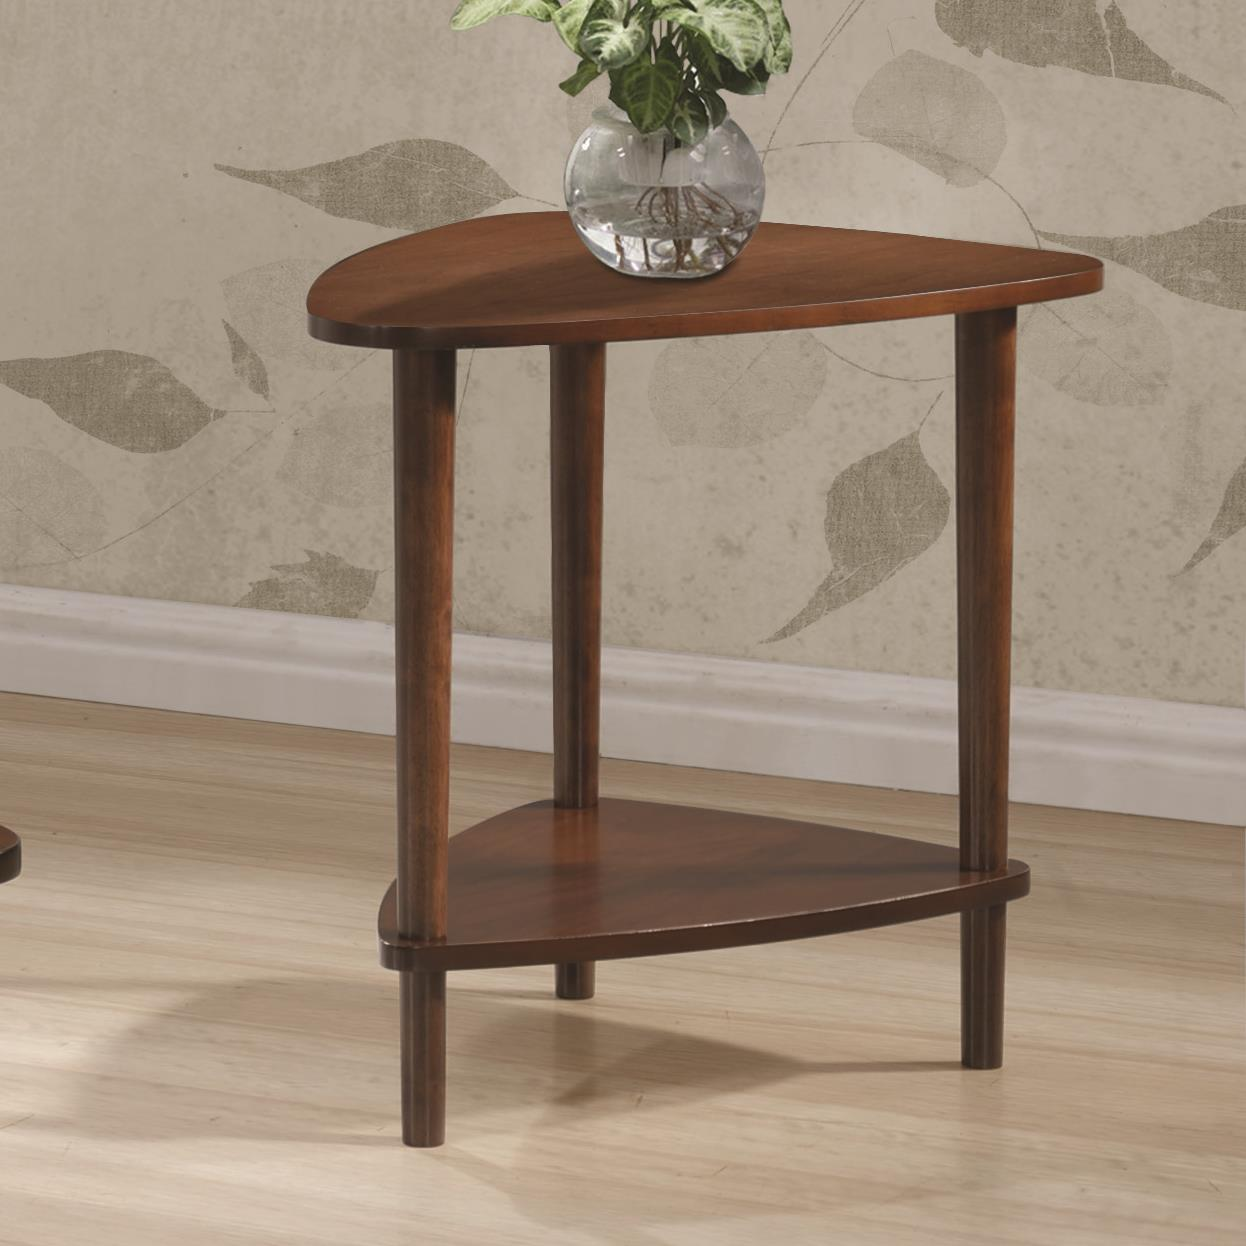 Coaster 70405 End Table - Item Number: 704057